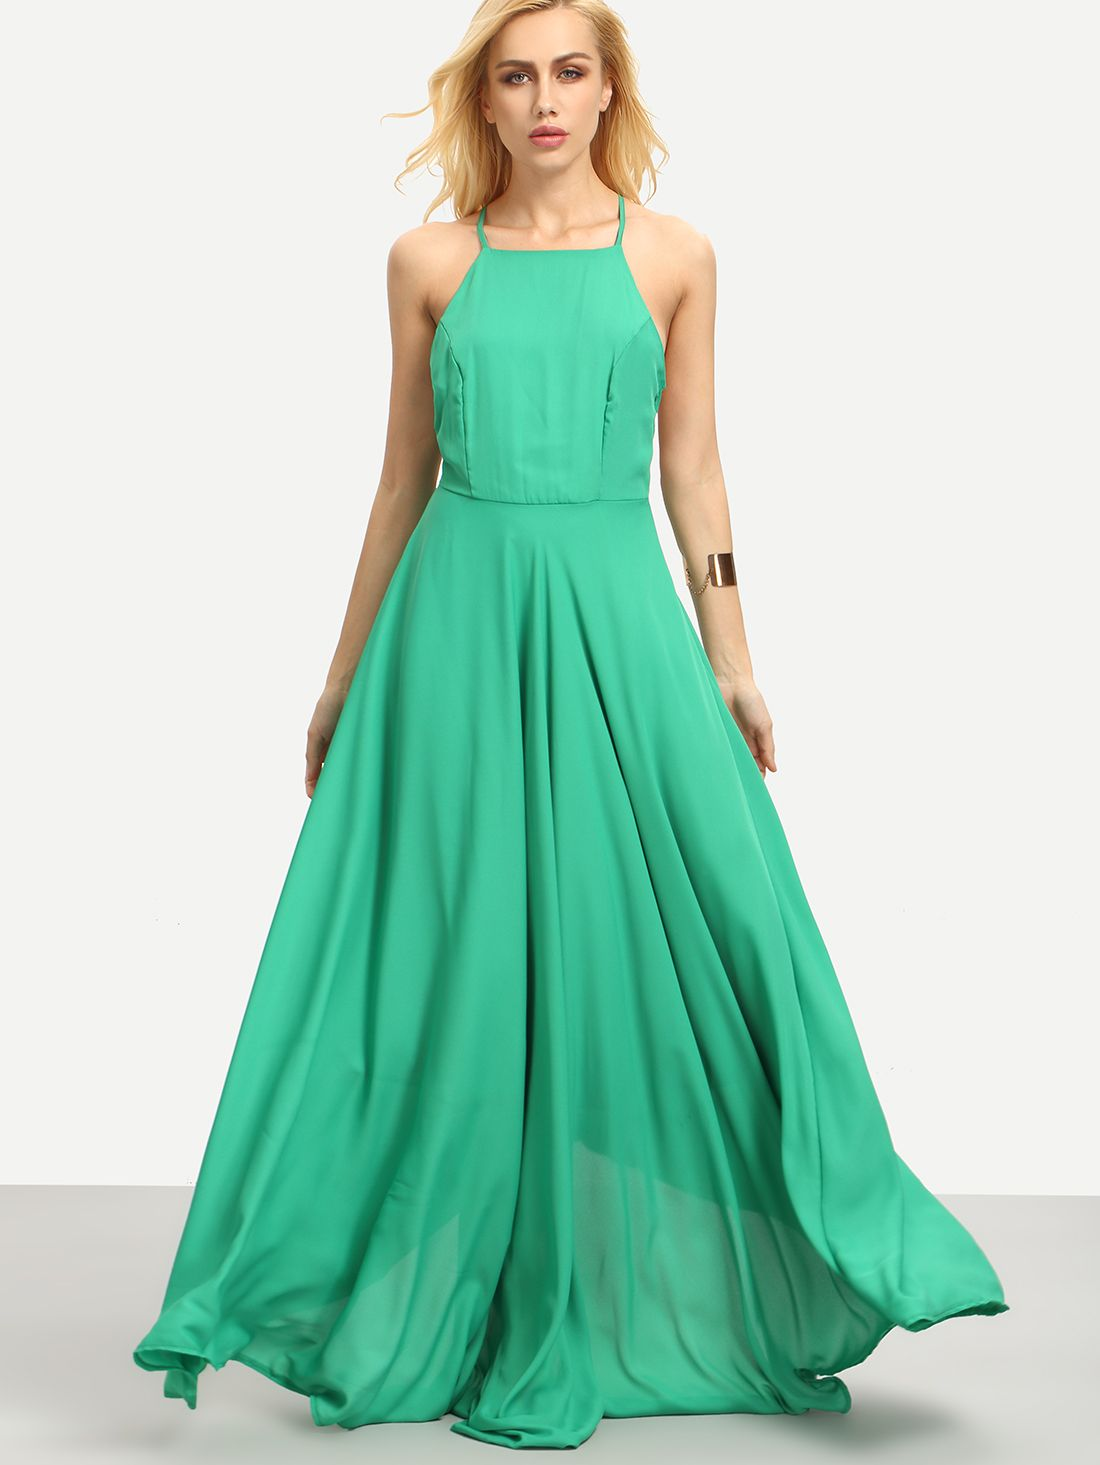 Funky Maxi Party Dresses Online Image Collection - All Wedding ...